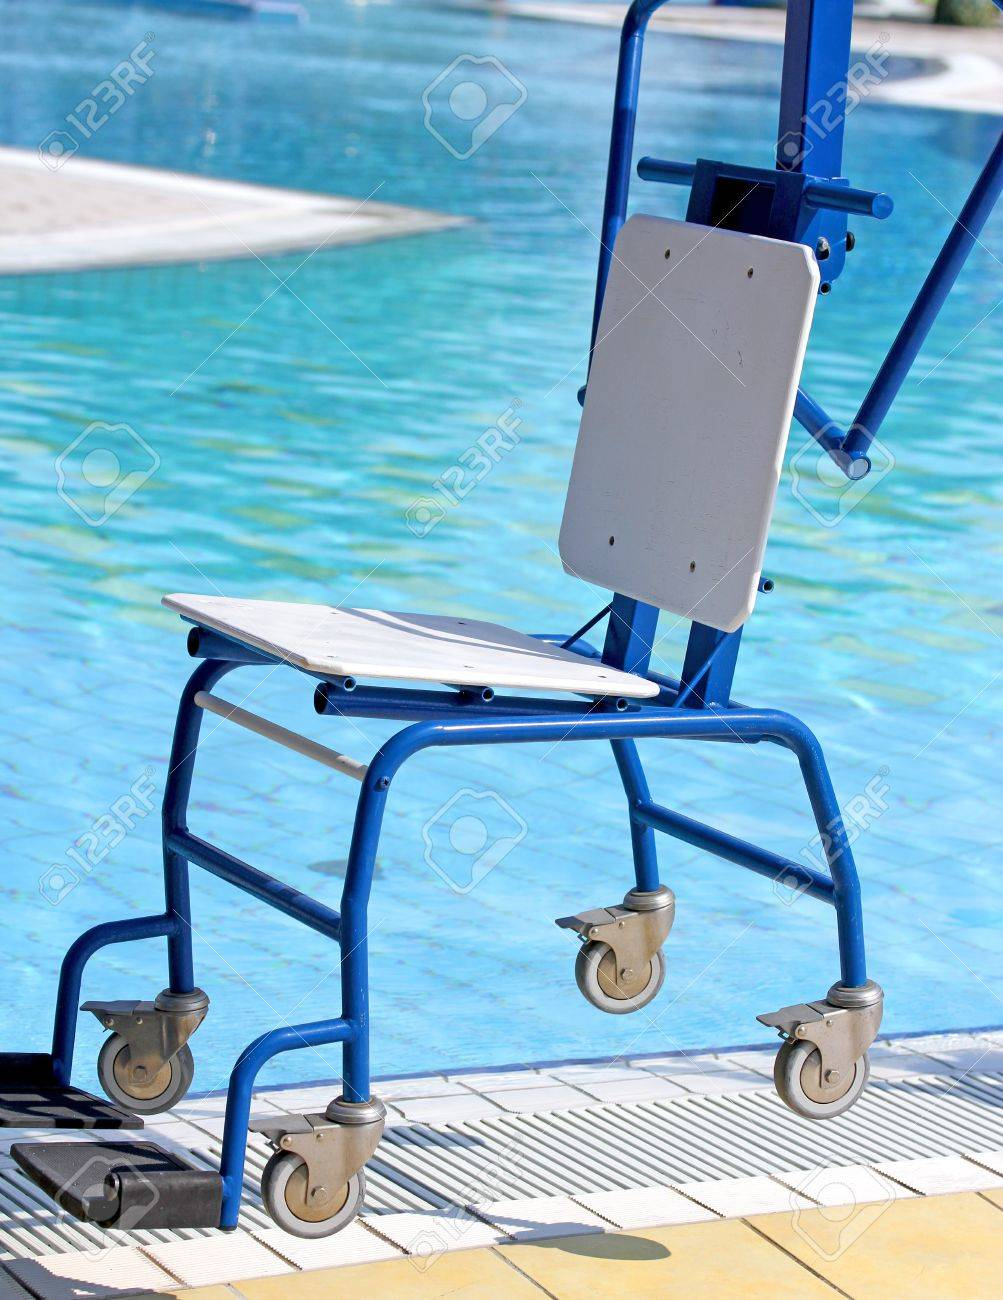 Ingenious Blue Chair For Disabled People To Make Use Of The Pool ...